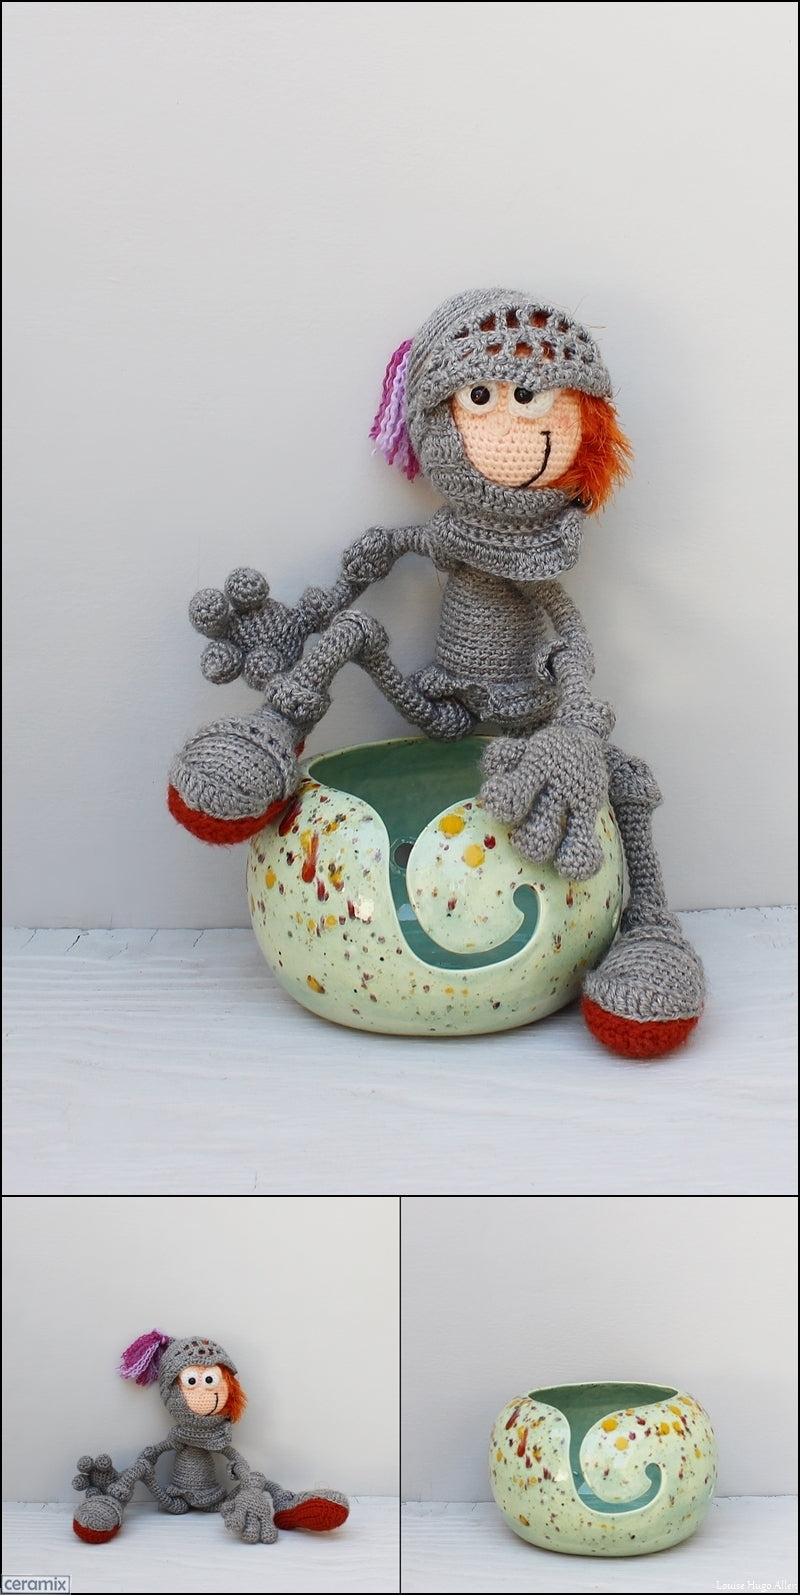 Angus the Scottish Knight soft toy and yarn bowl